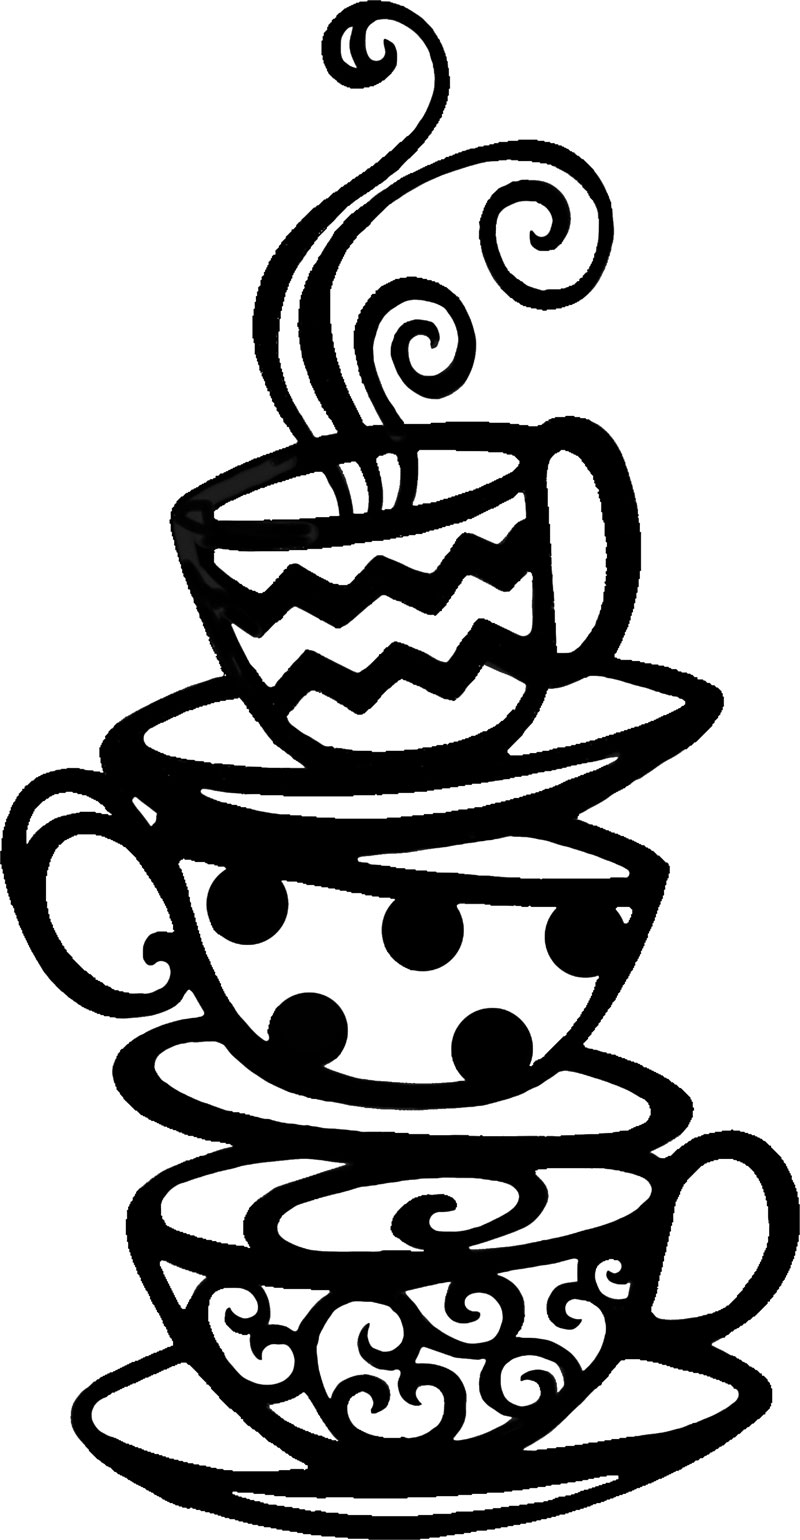 stacked_teacups